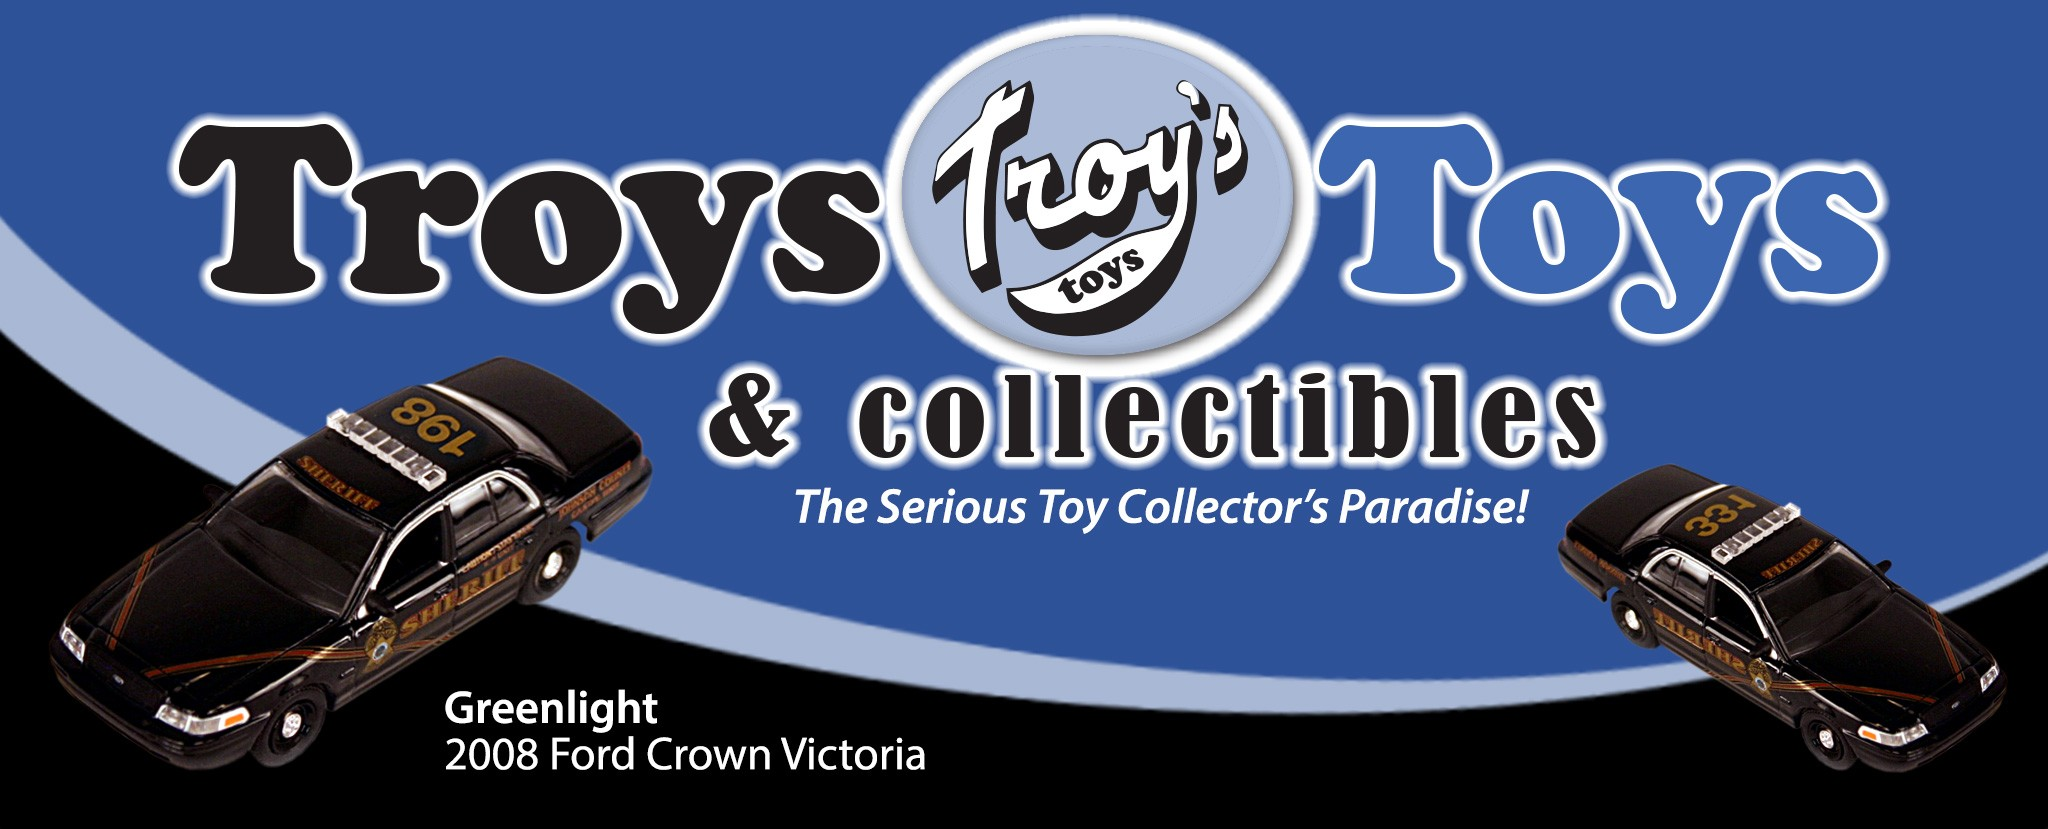 troys-toys-and-collectibles-diecast